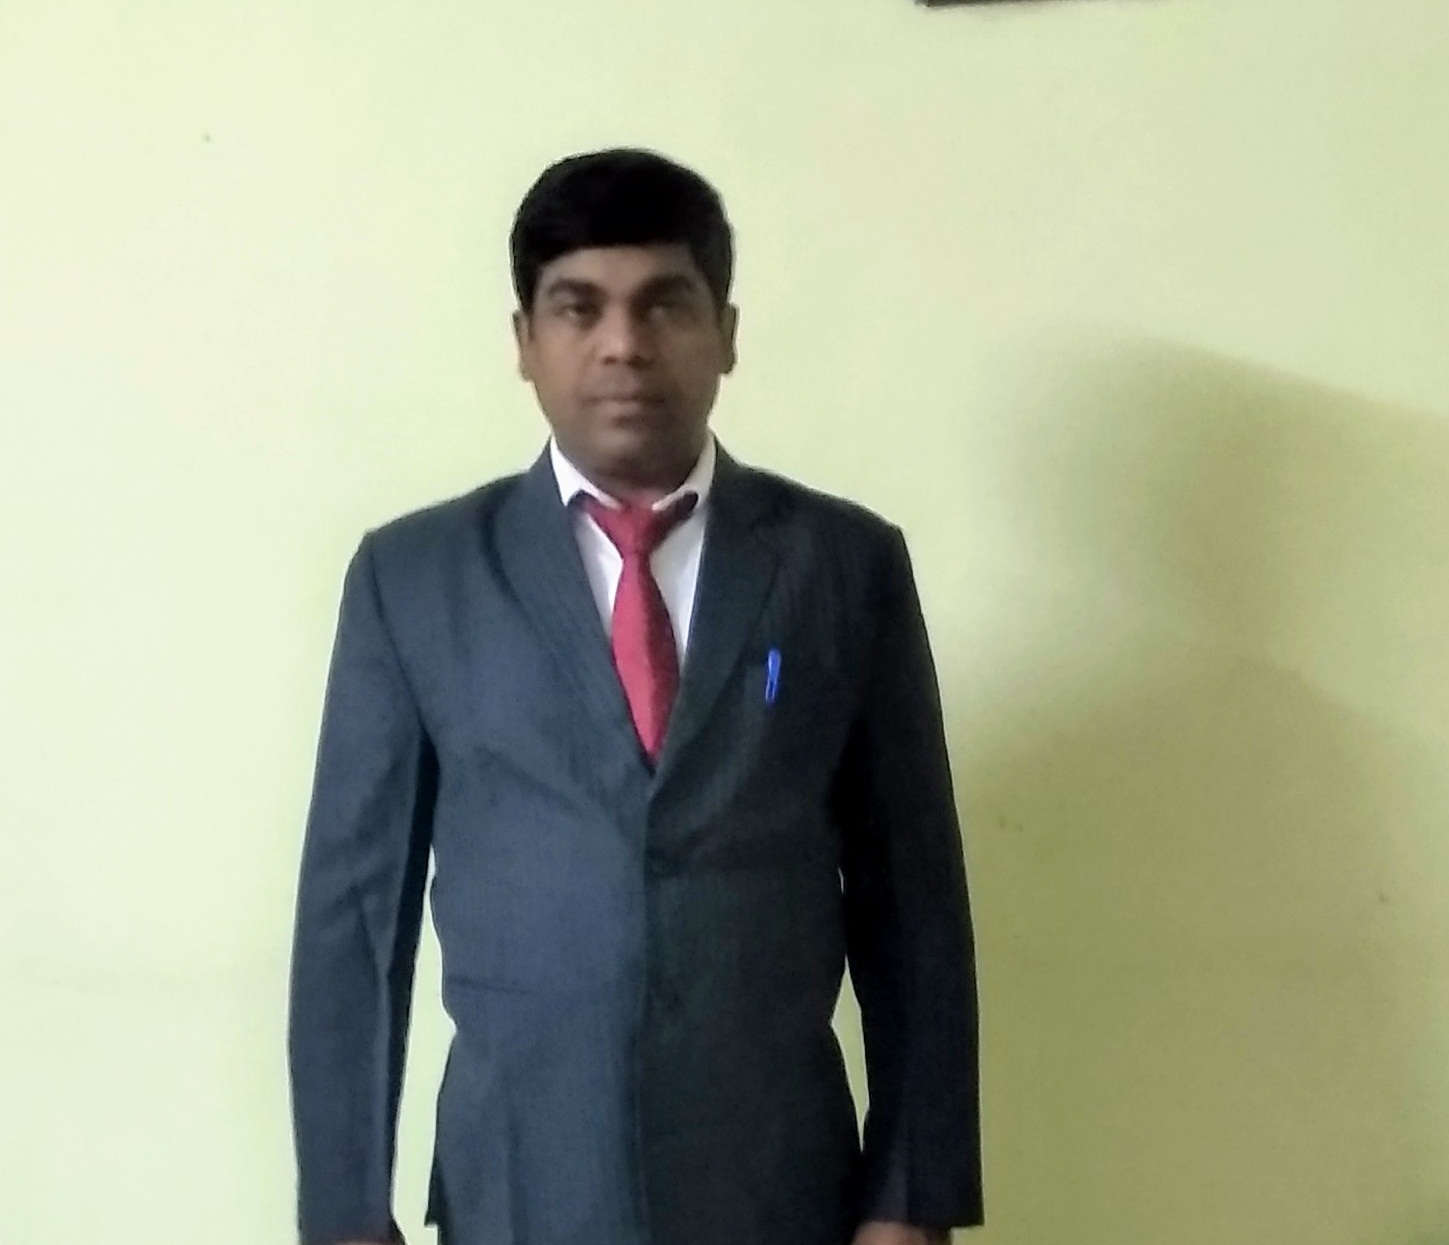 Mr. Avinash Kumar